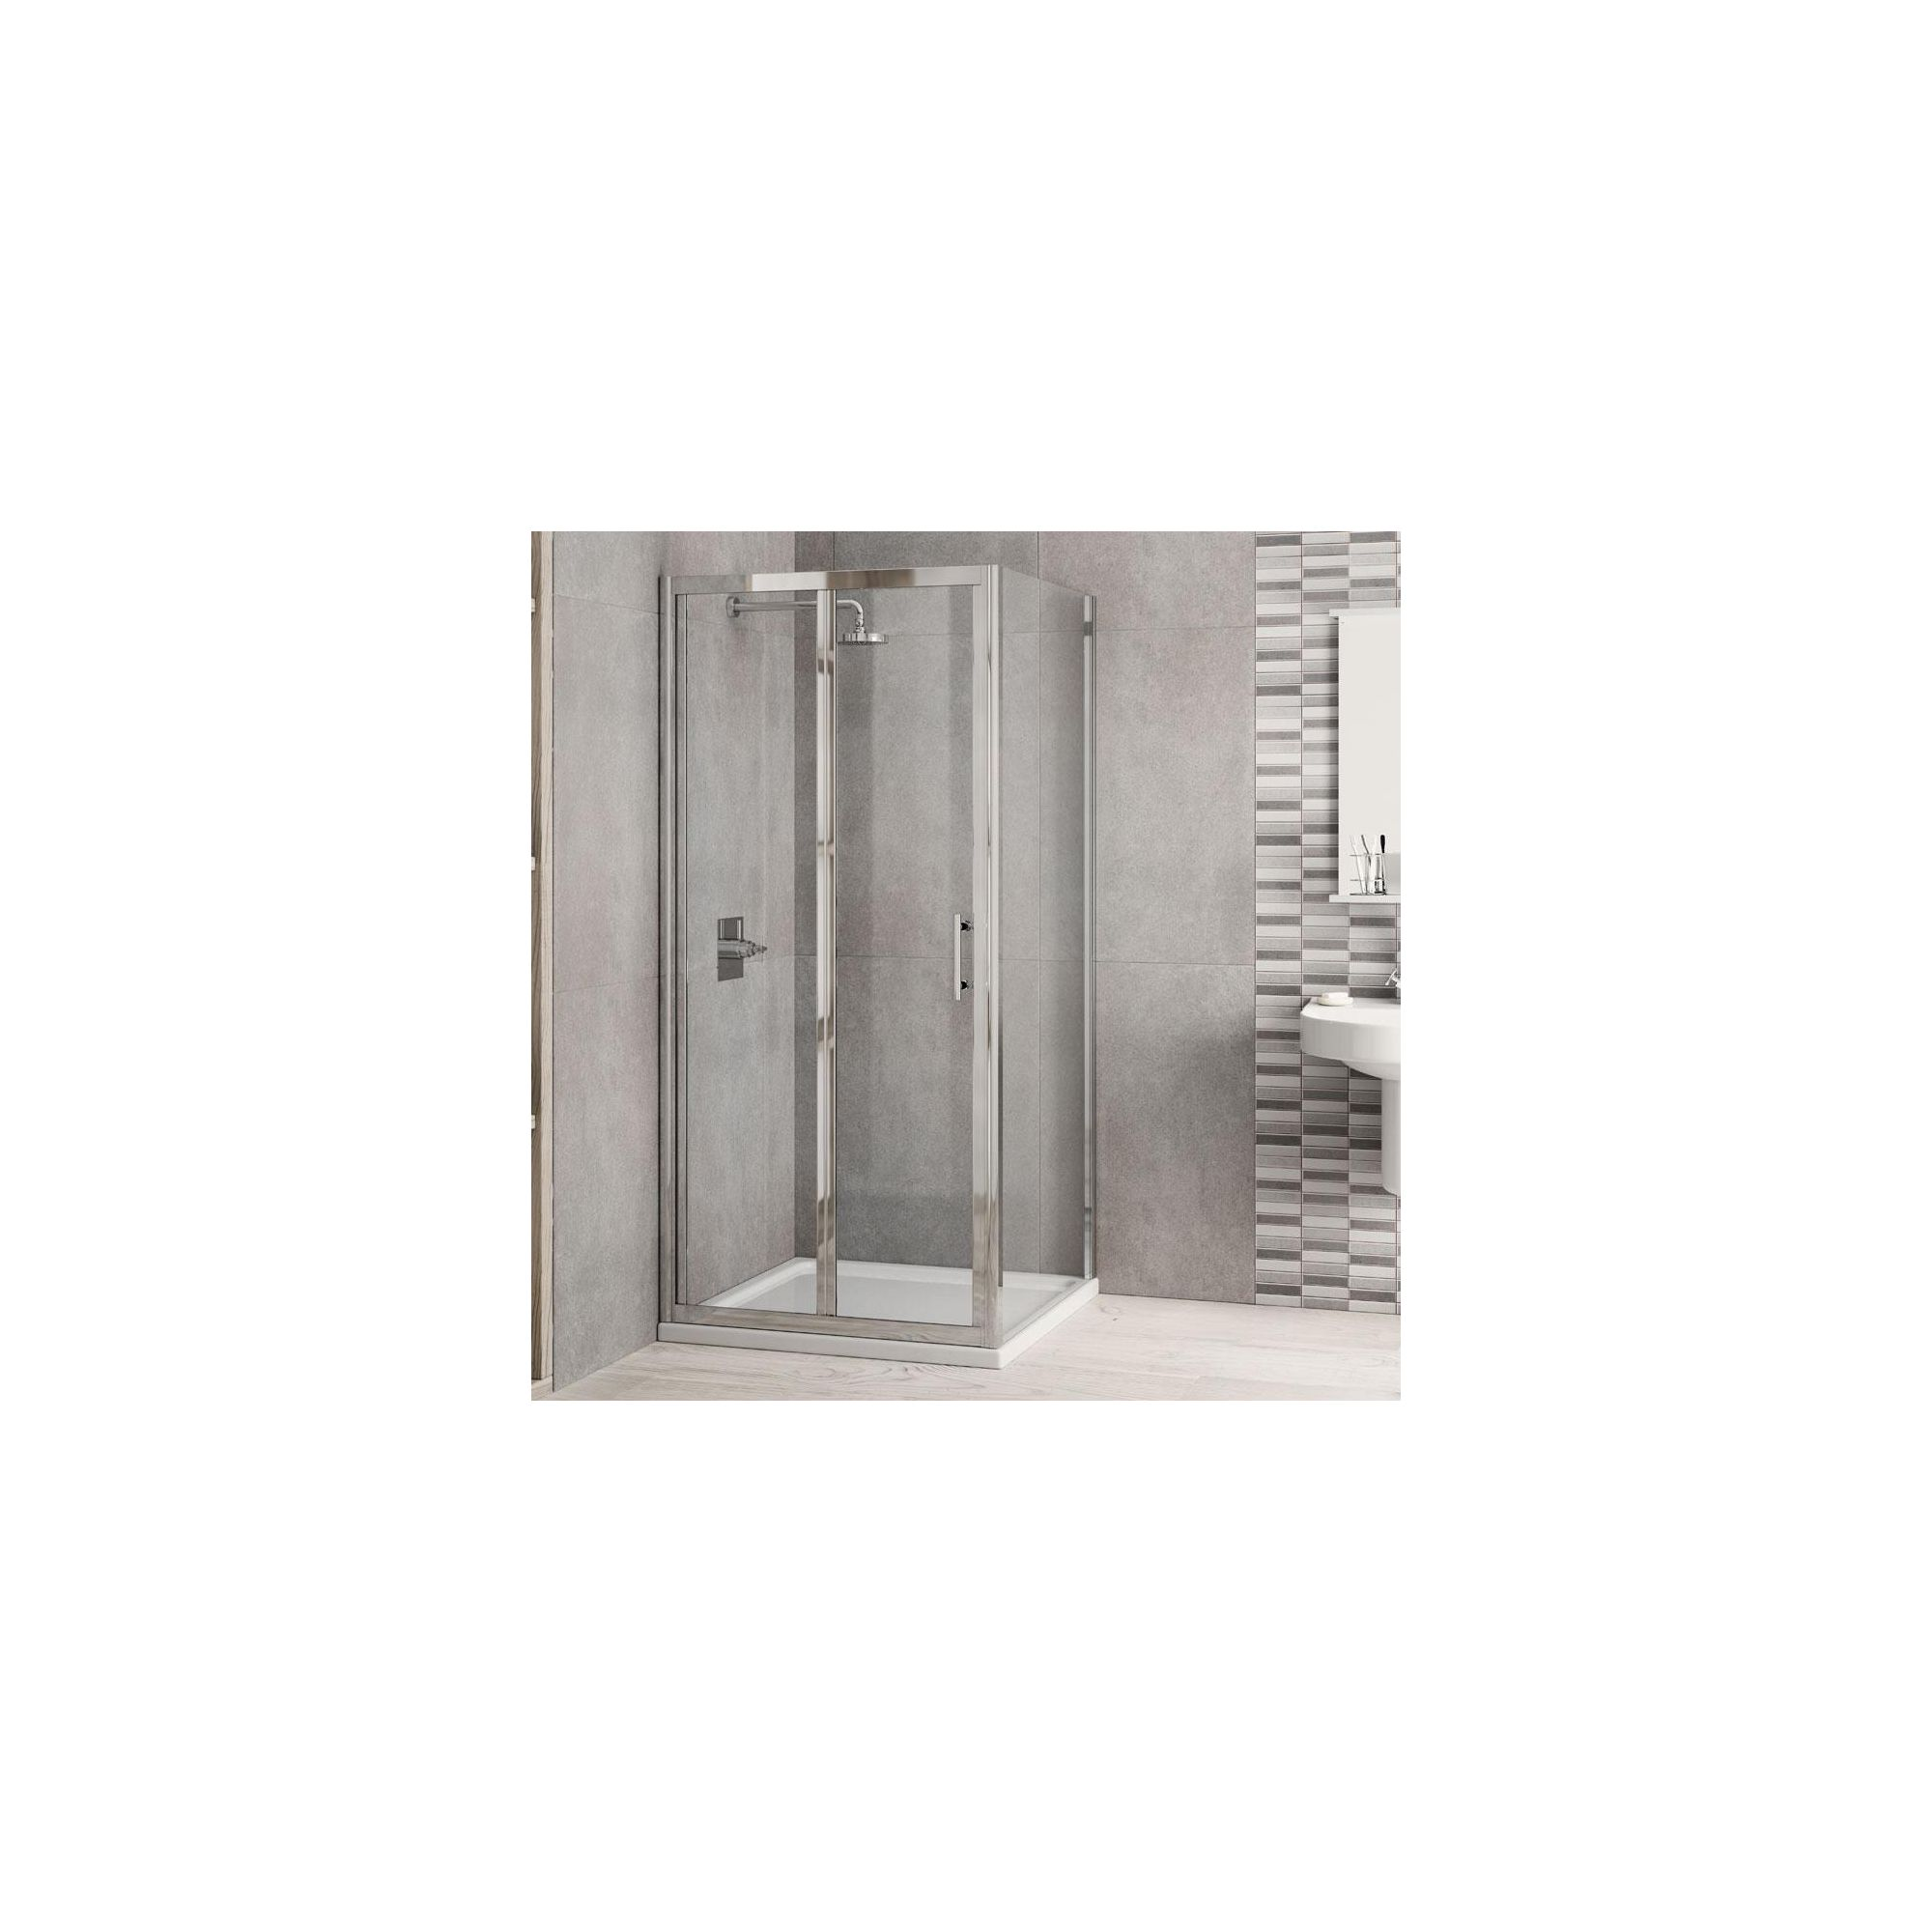 Elemis Inspire Bi-Fold Door Shower Enclosure, 1000mm x 1000mm, 6mm Glass, Low Profile Tray at Tesco Direct